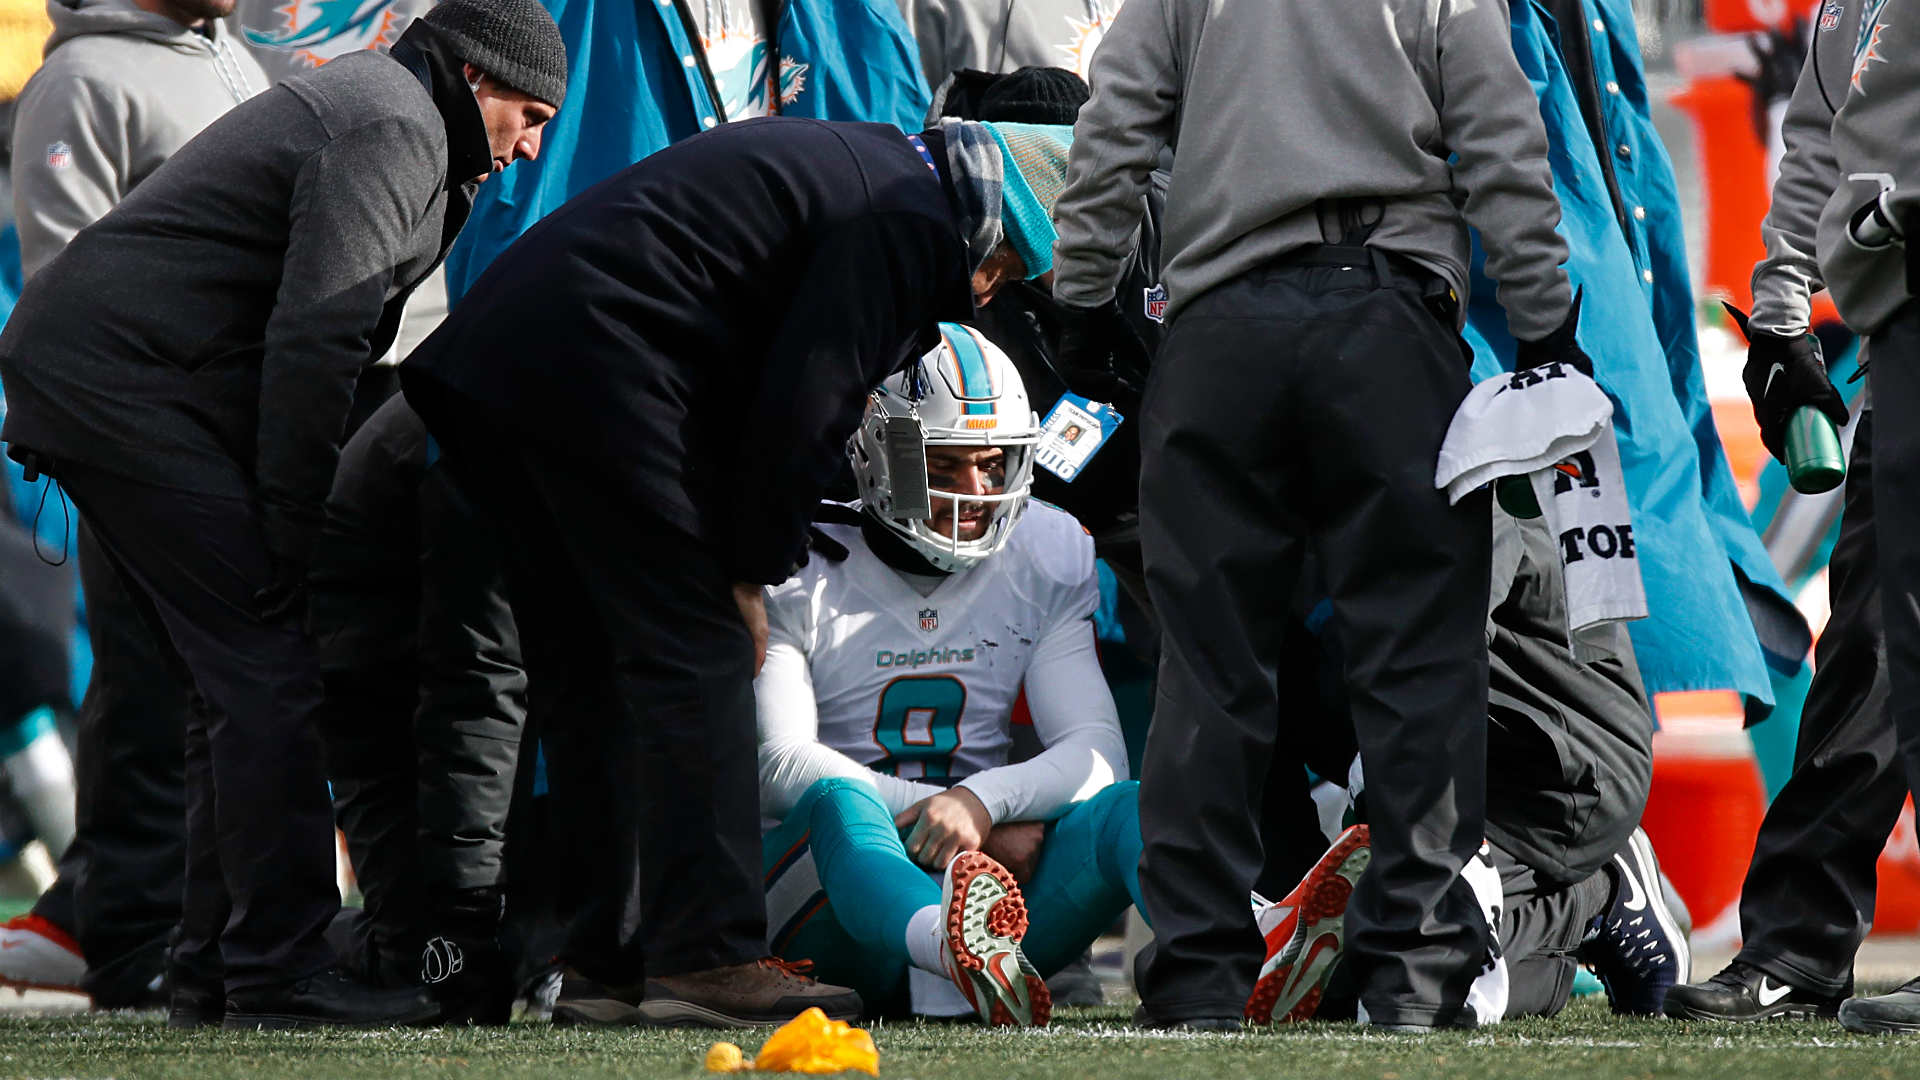 NFL review: Dolphins lax in concussion protocol on Matt Moore hit